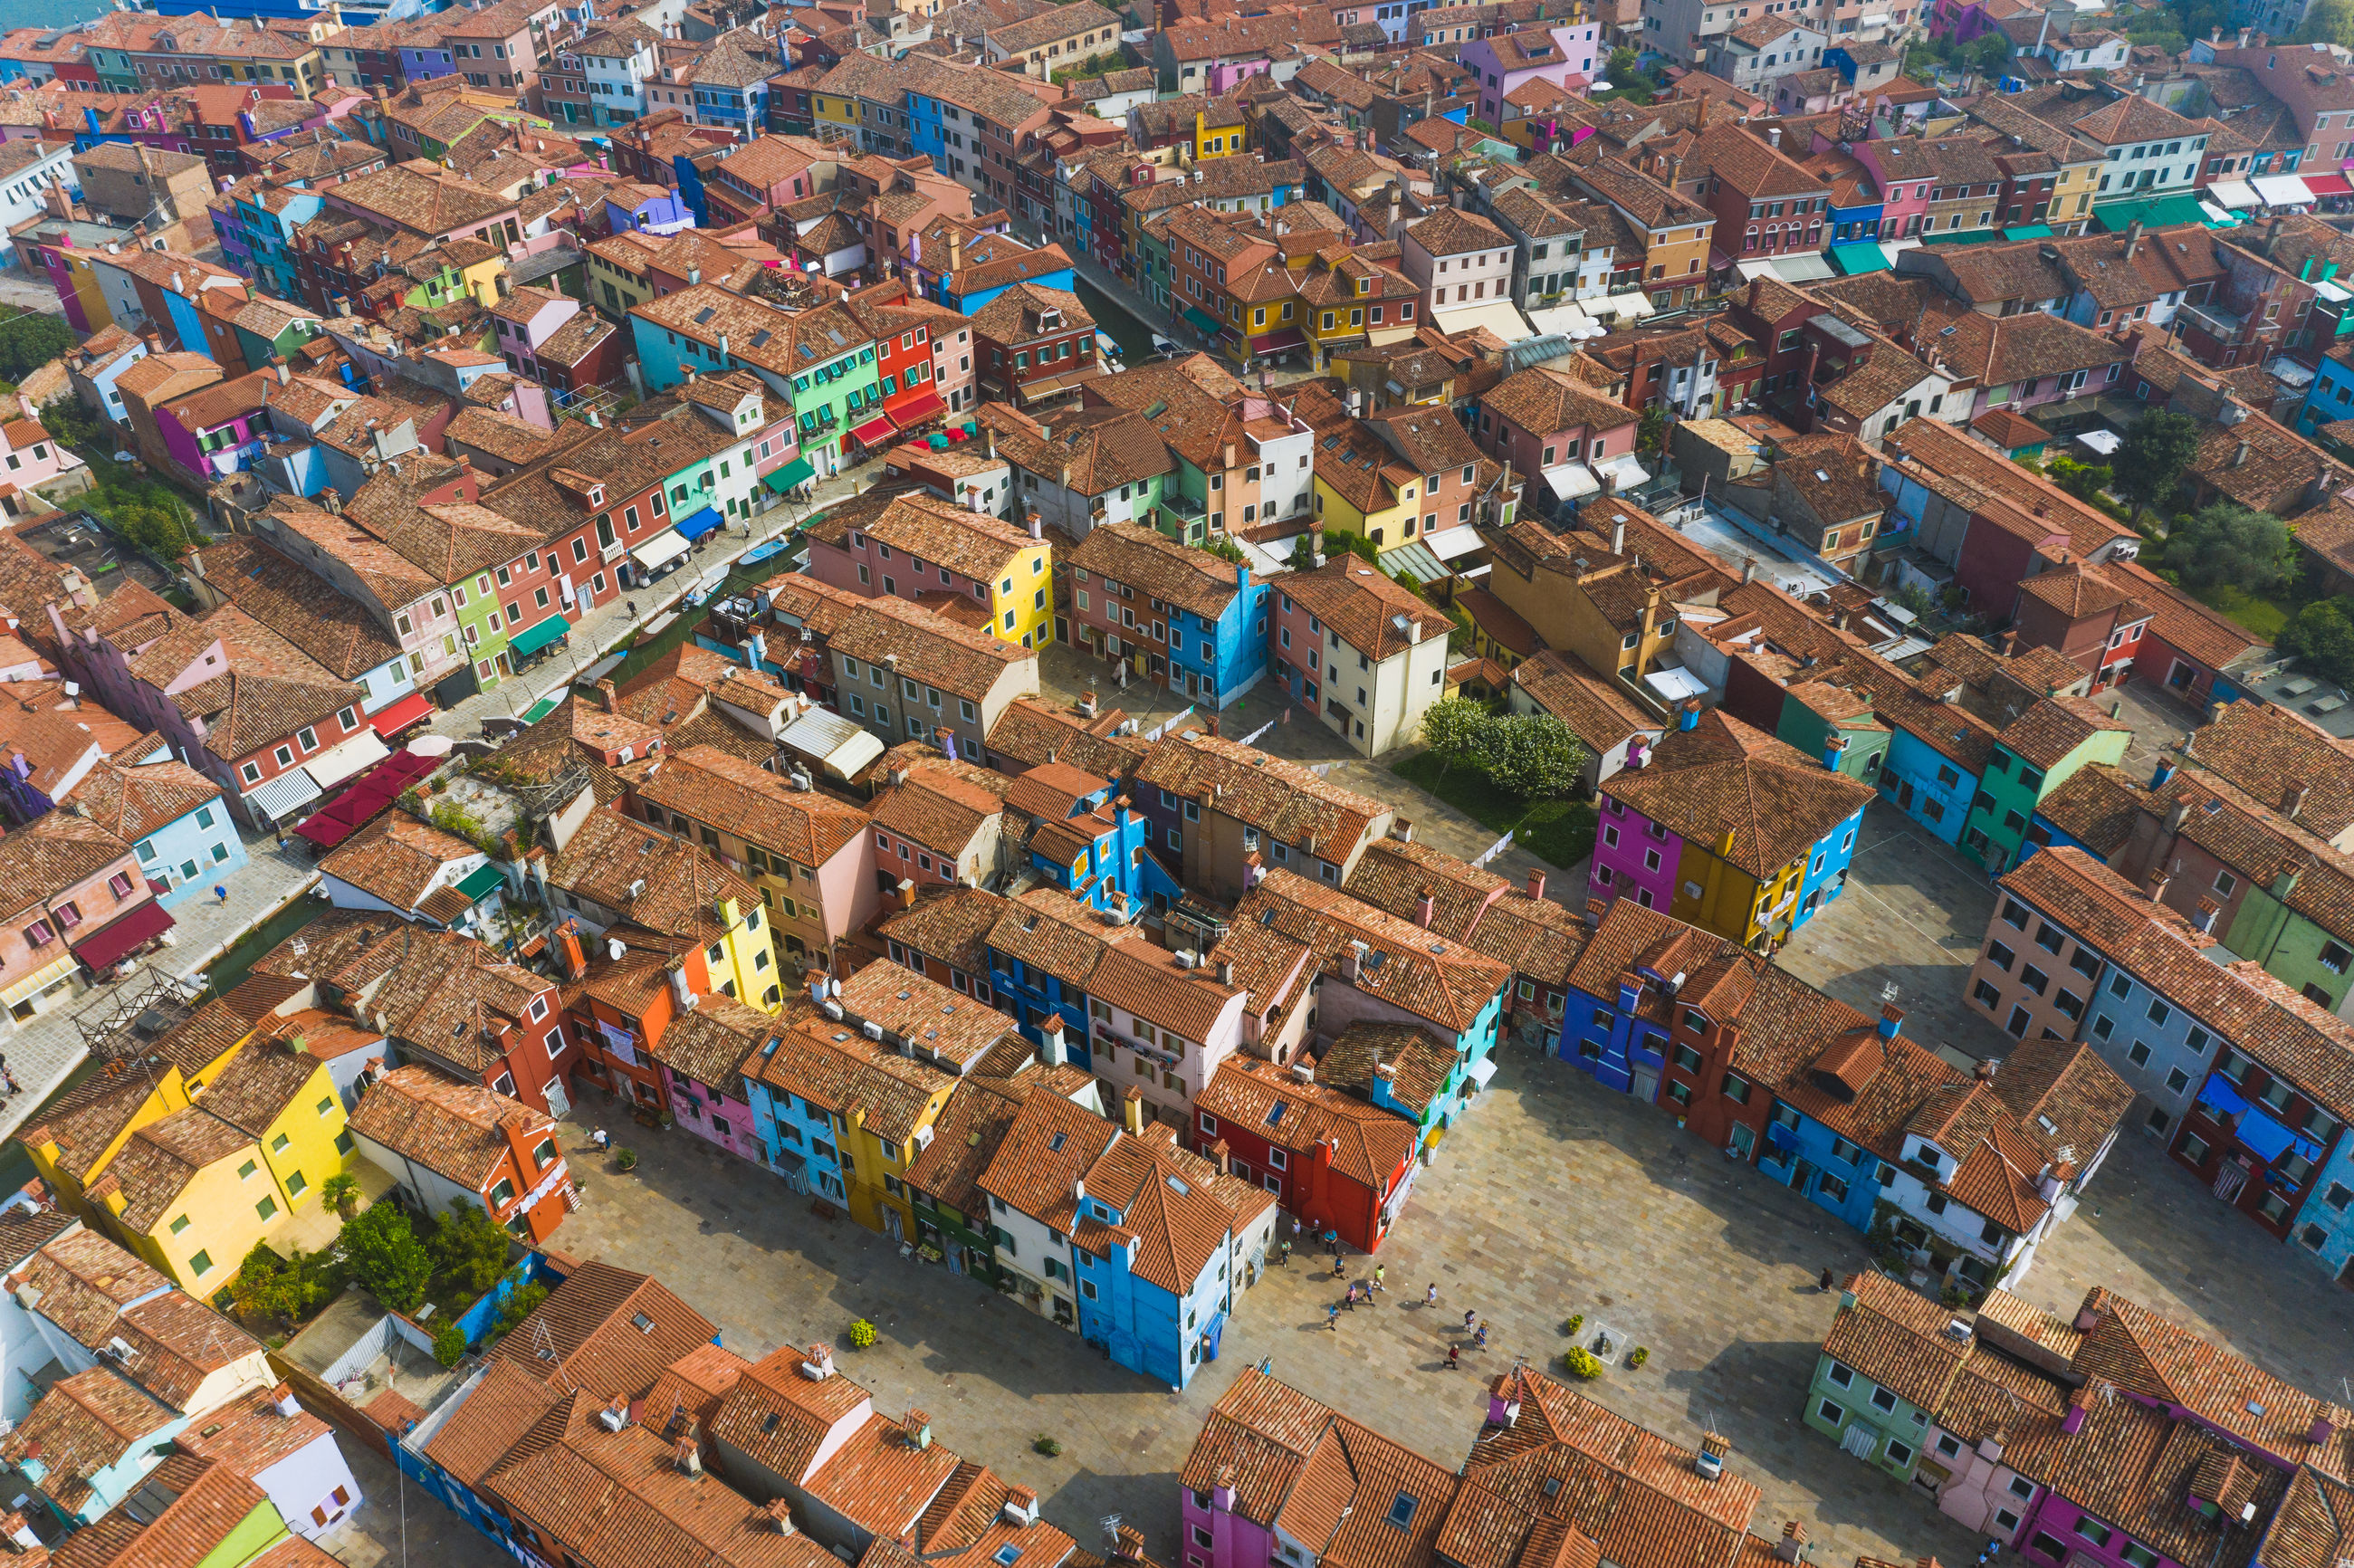 architecture, building exterior, aerial view, high angle view, built structure, city, residential district, building, landscape, day, cityscape, environment, community, no people, roof, rural scene, nature, house, outdoors